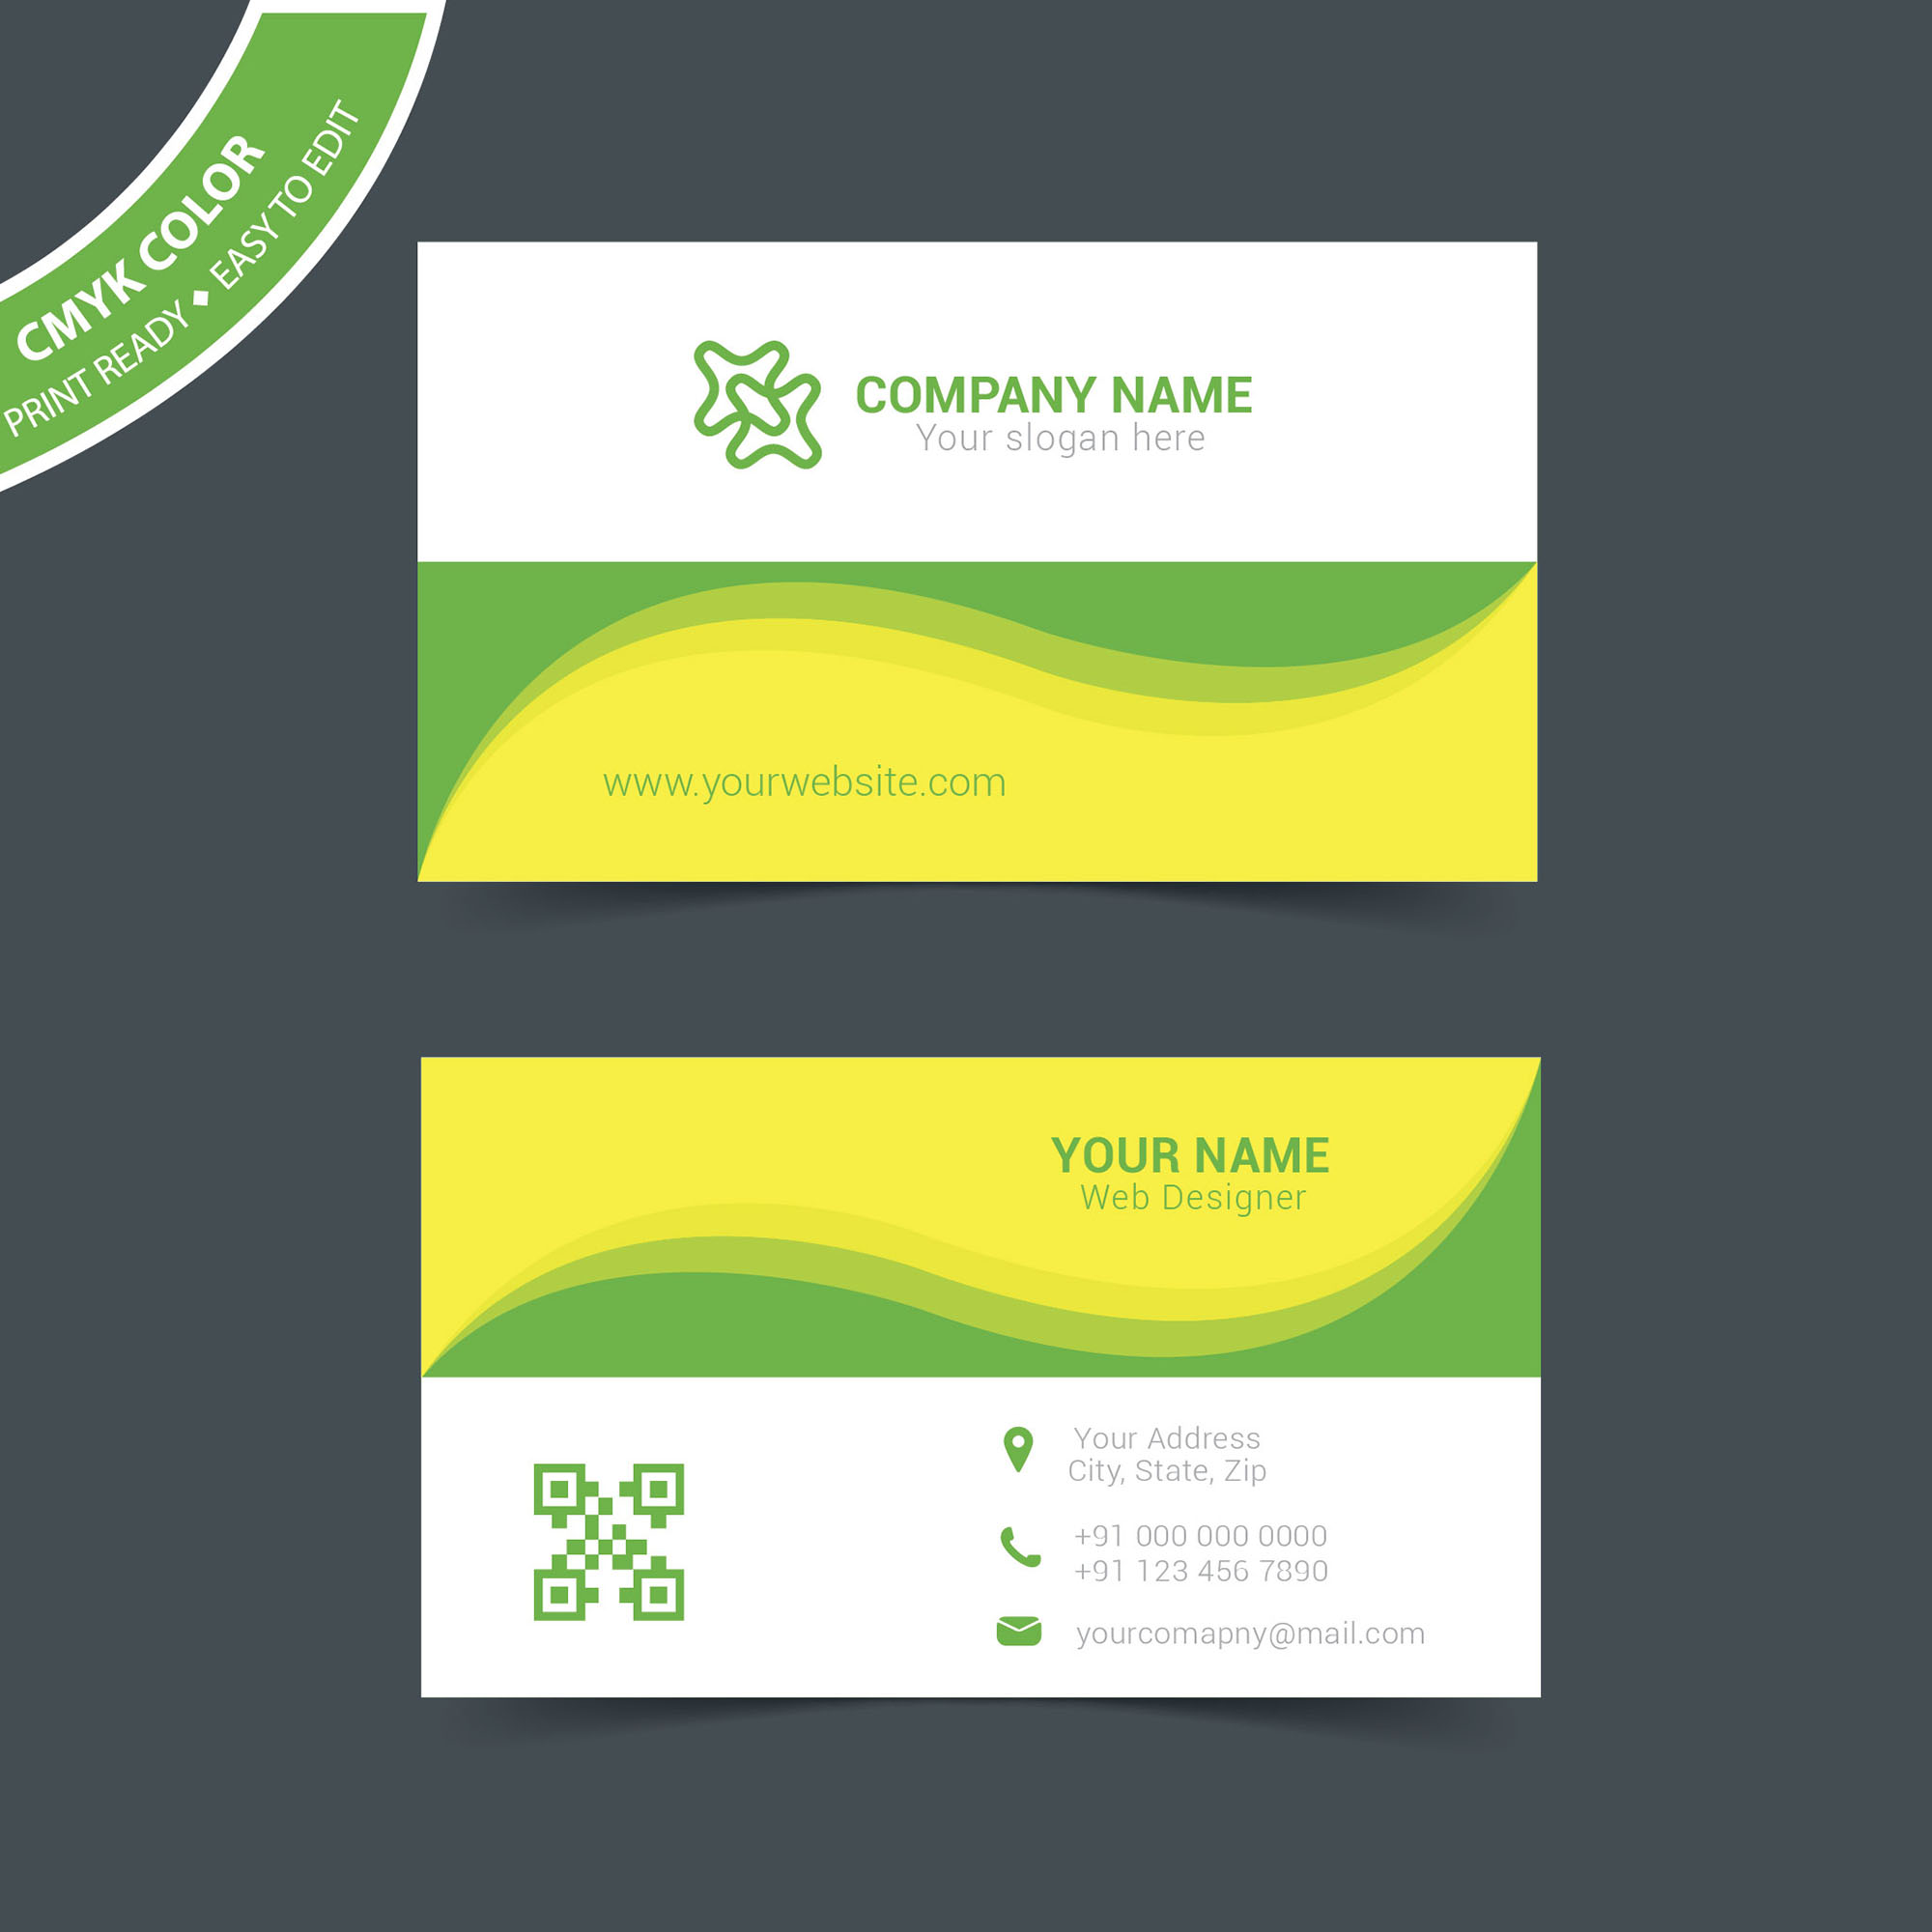 Corporate Business Card Vector Free Download Wisxicom - Free business card layout template